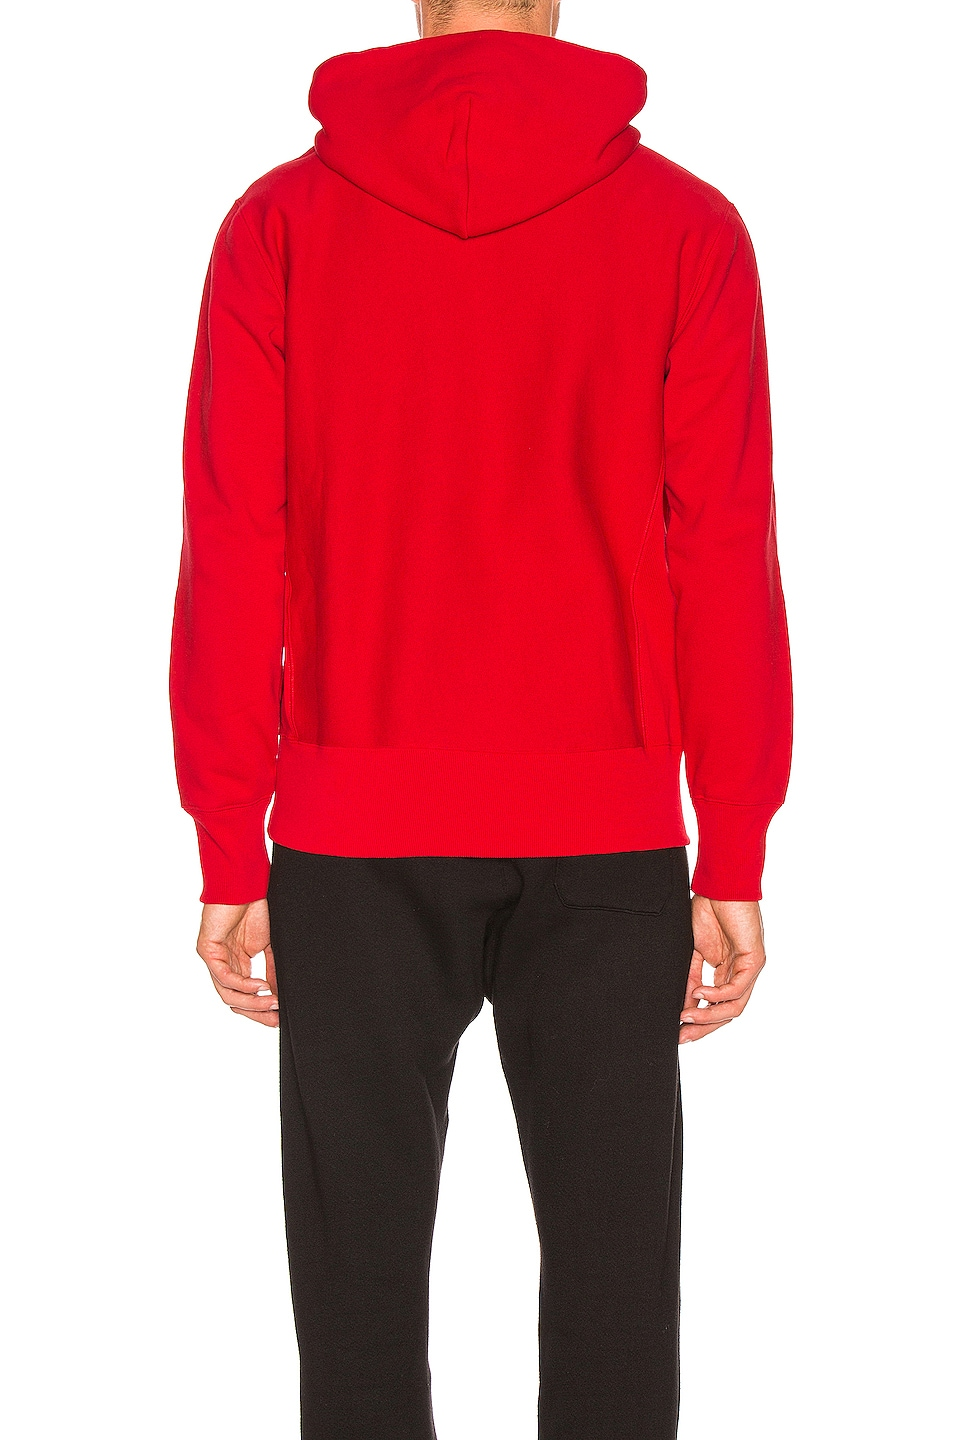 Image 3 of Champion Reverse Weave Champion Hooded Sweatshirt in Red